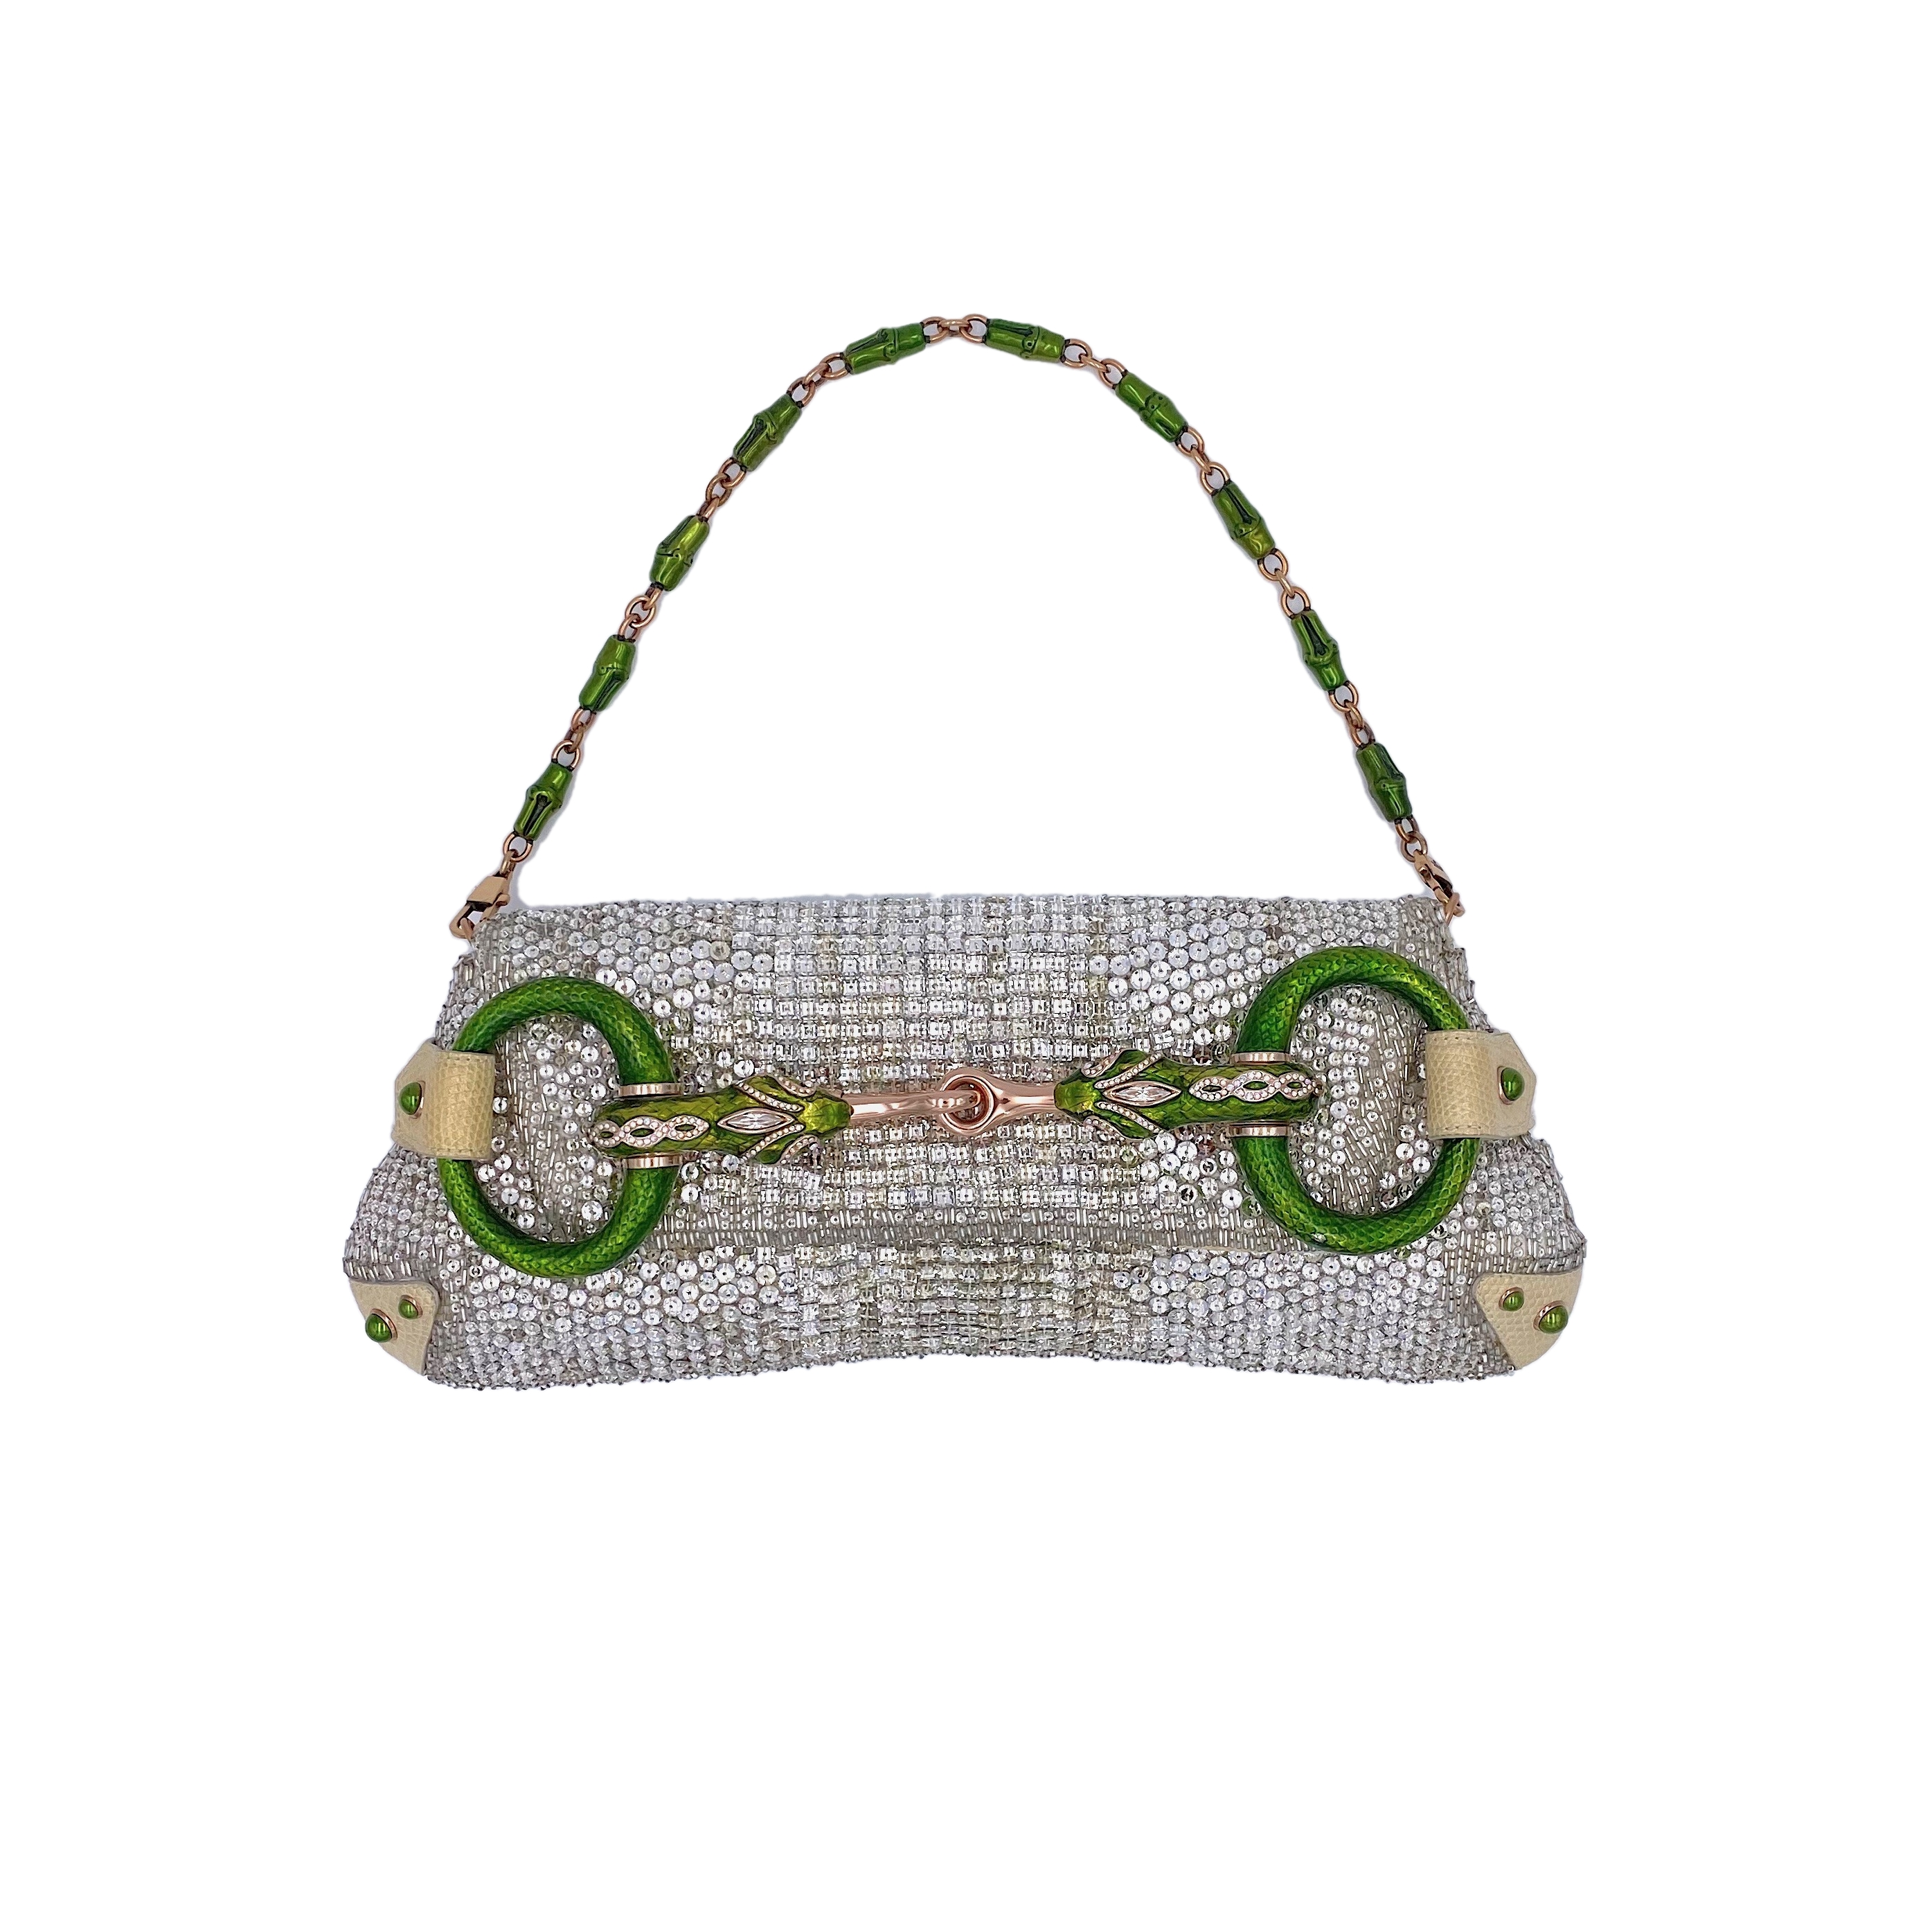 View full screen - View 1 of Lot 707. GUCCI   TOM FORD SERPENT HEAD CLUTCH BAG IN LIZARD WITH SWAROVSKI CRYSTALS.